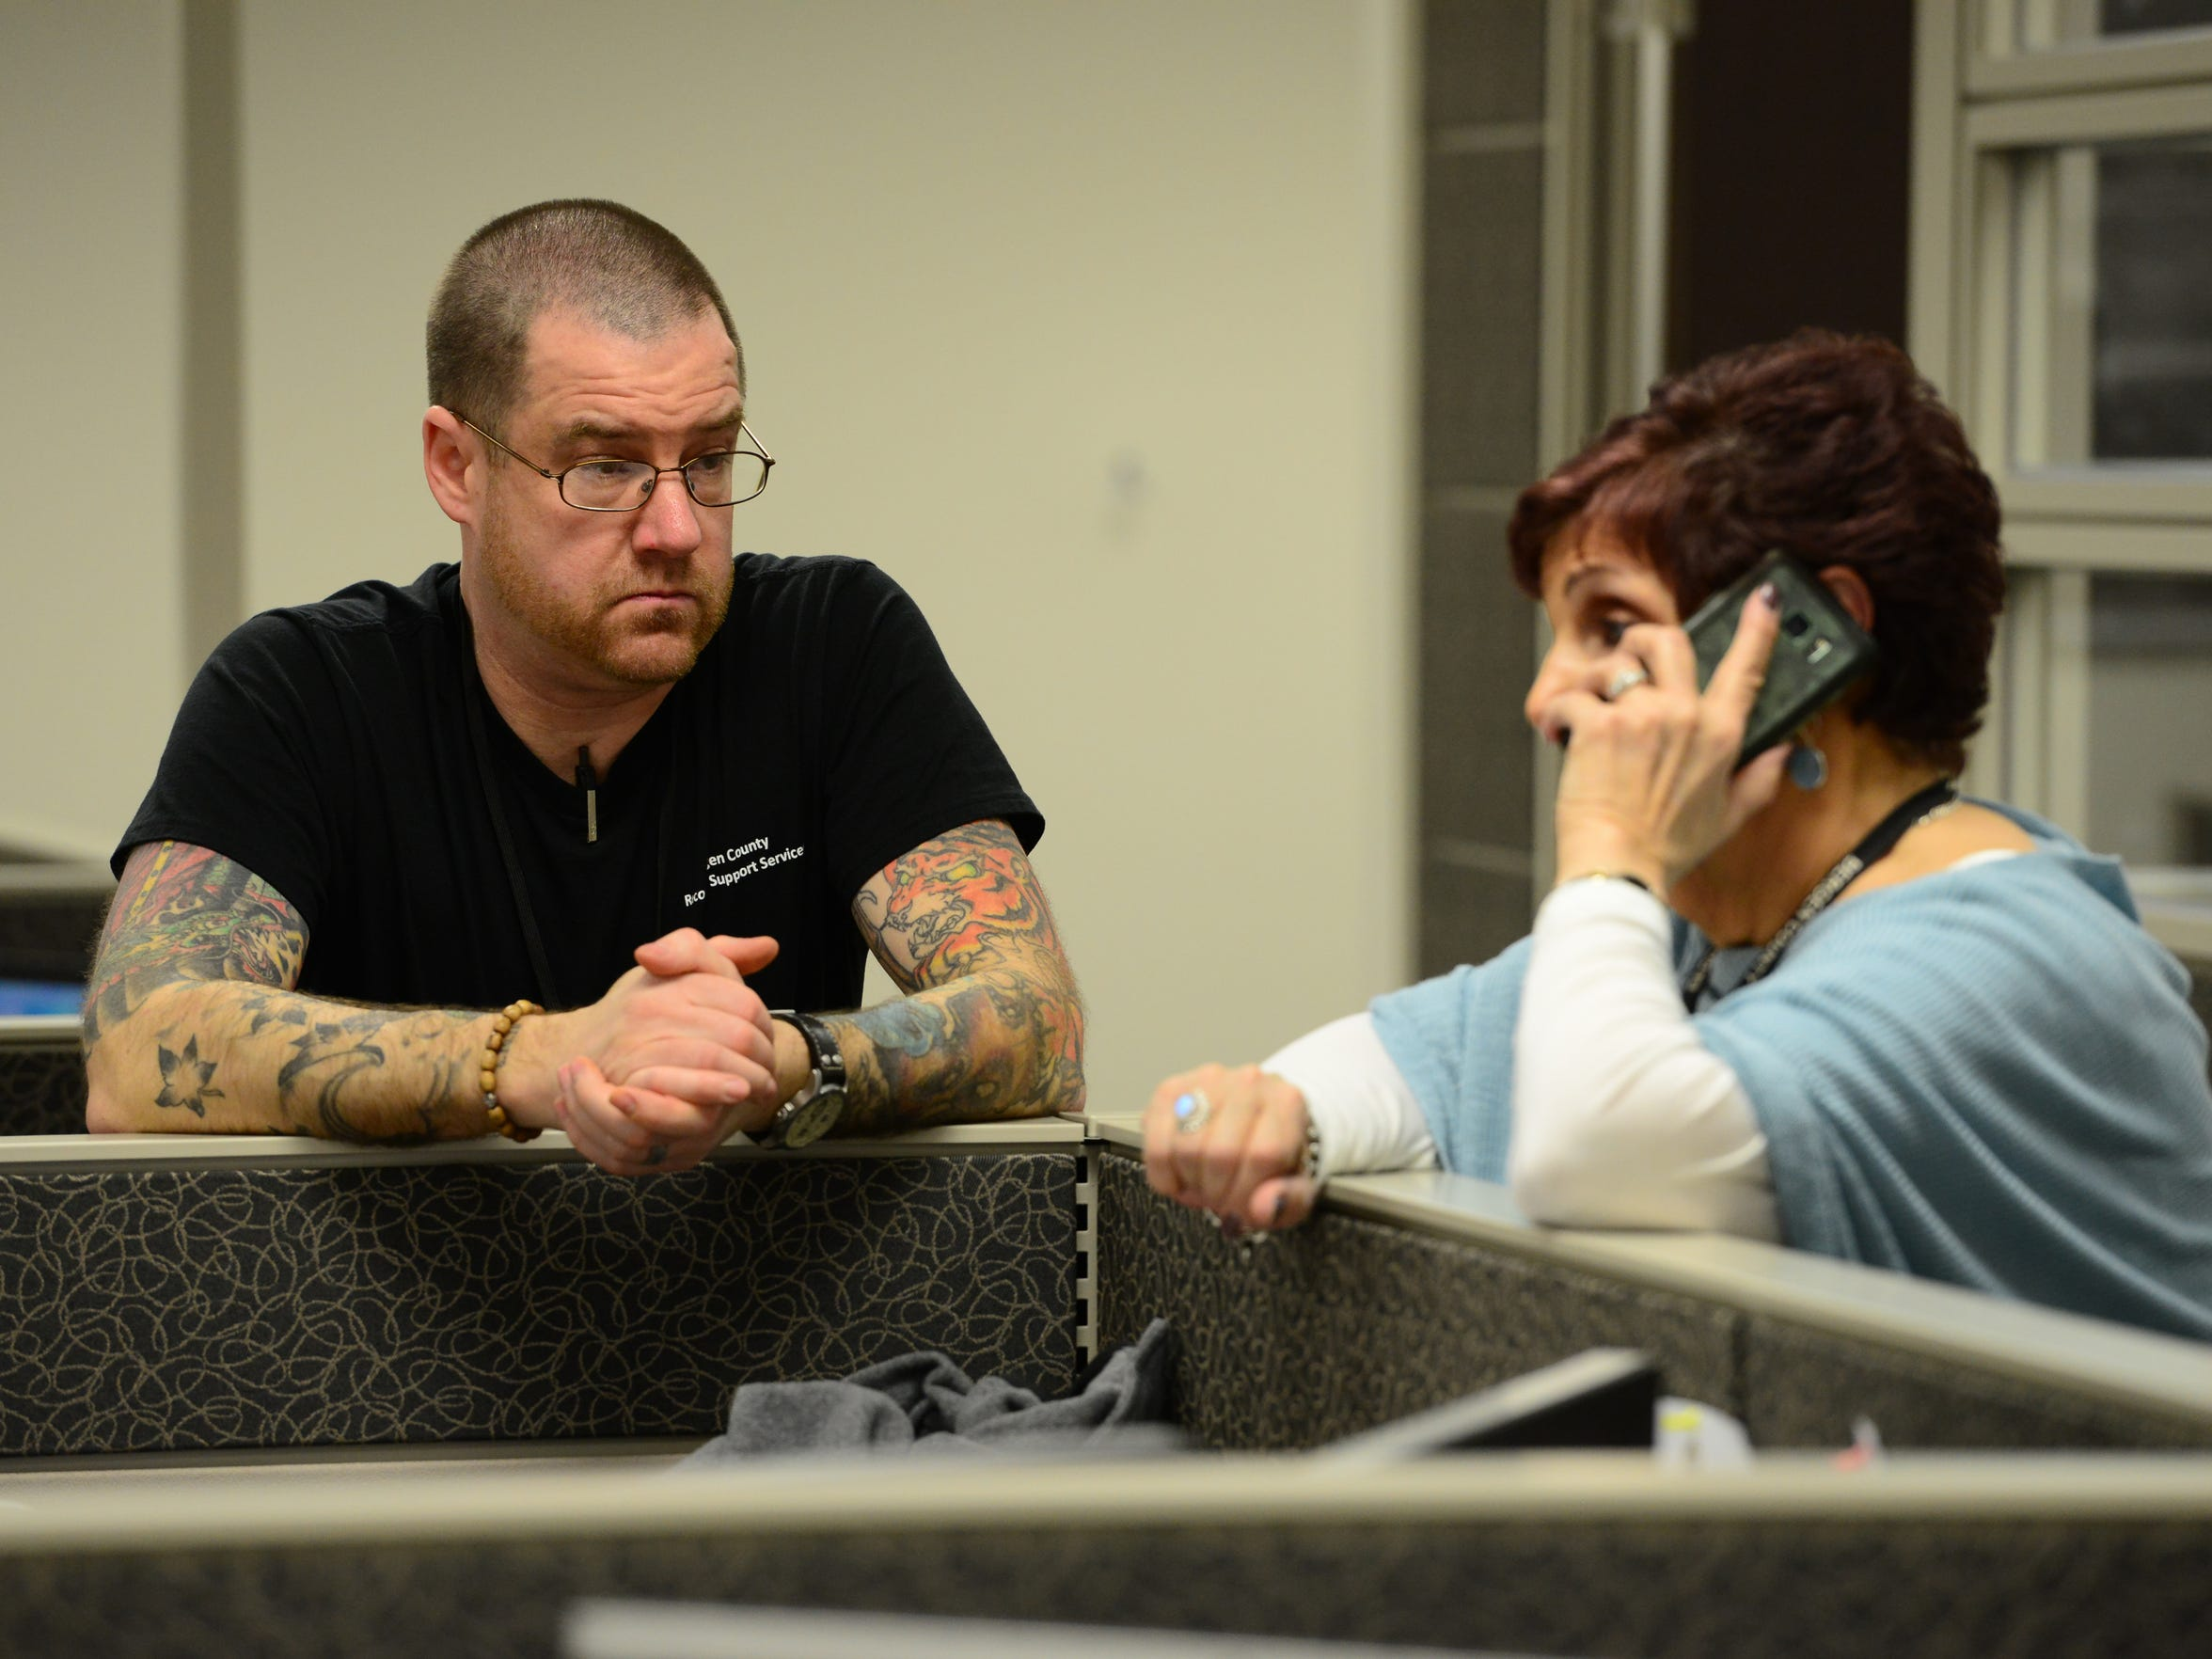 Ben Kimmel, a recovery specialist, and Sue A. Marchese-Debiak,